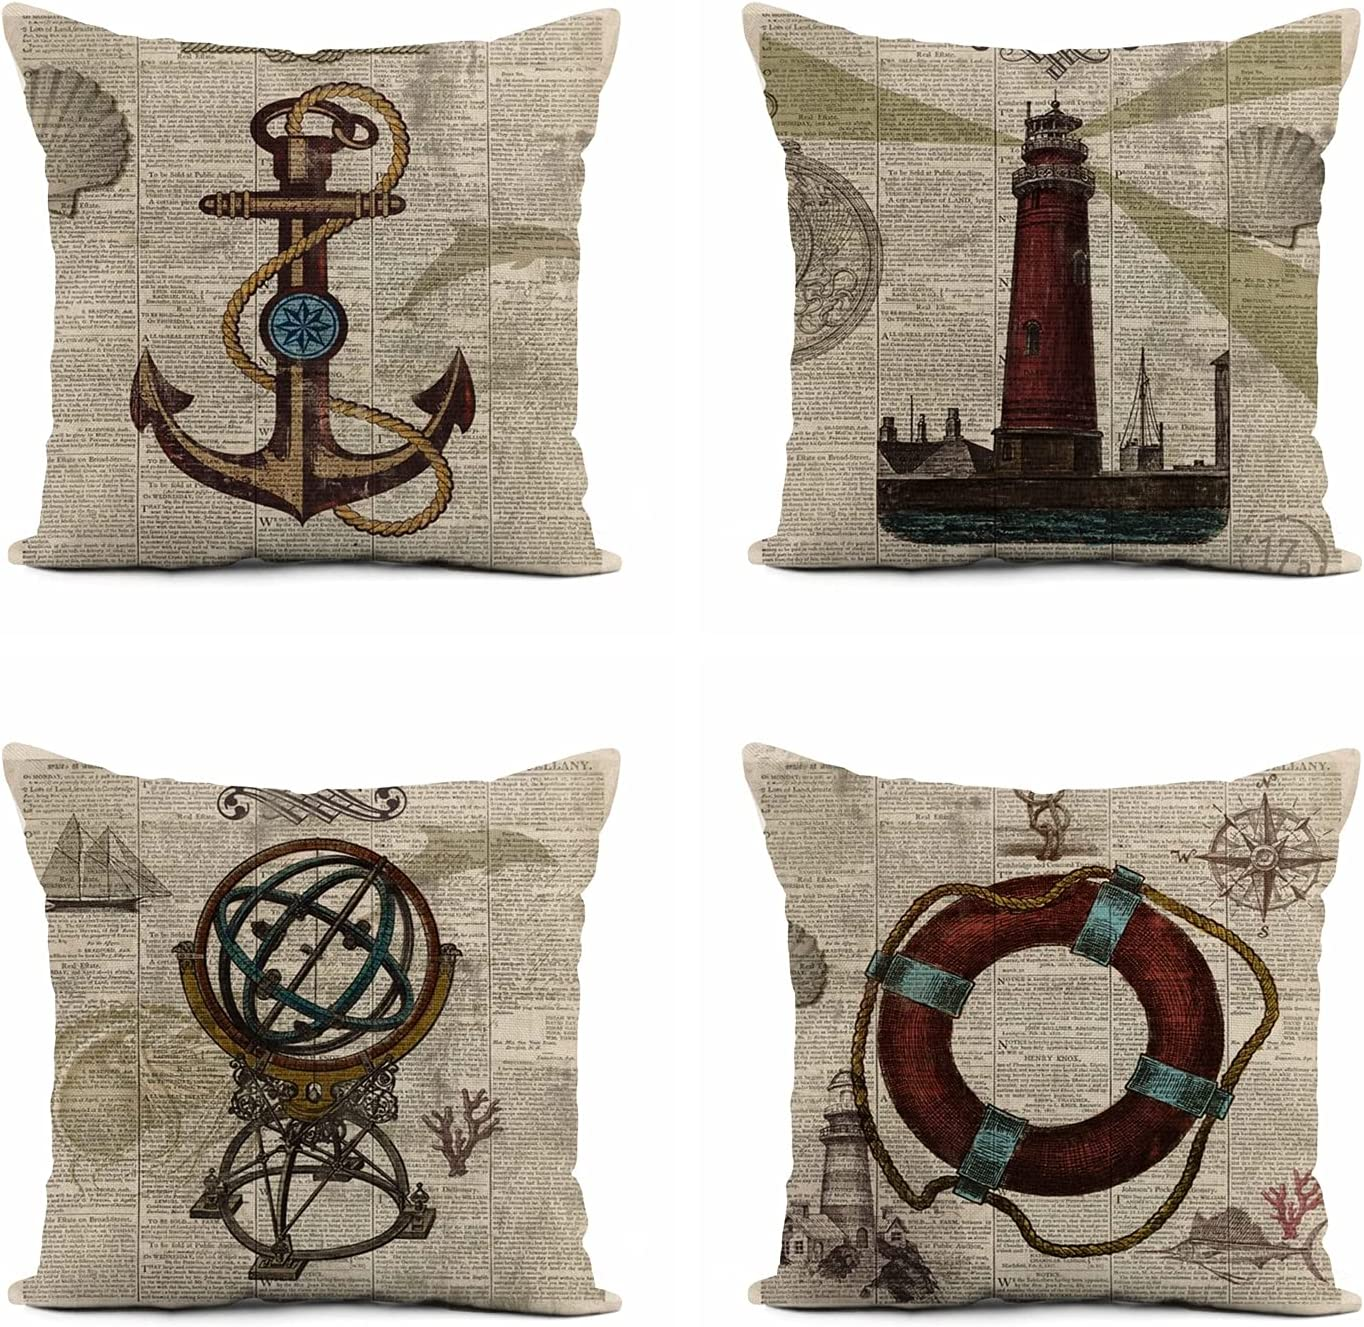 rouihot Set of 4 Linen Throw Pillow Covers 16x16 Inch Vintage Poster Nautical Home Decor Pillowcase Square Cushion Cover for Sofa Bed Couch